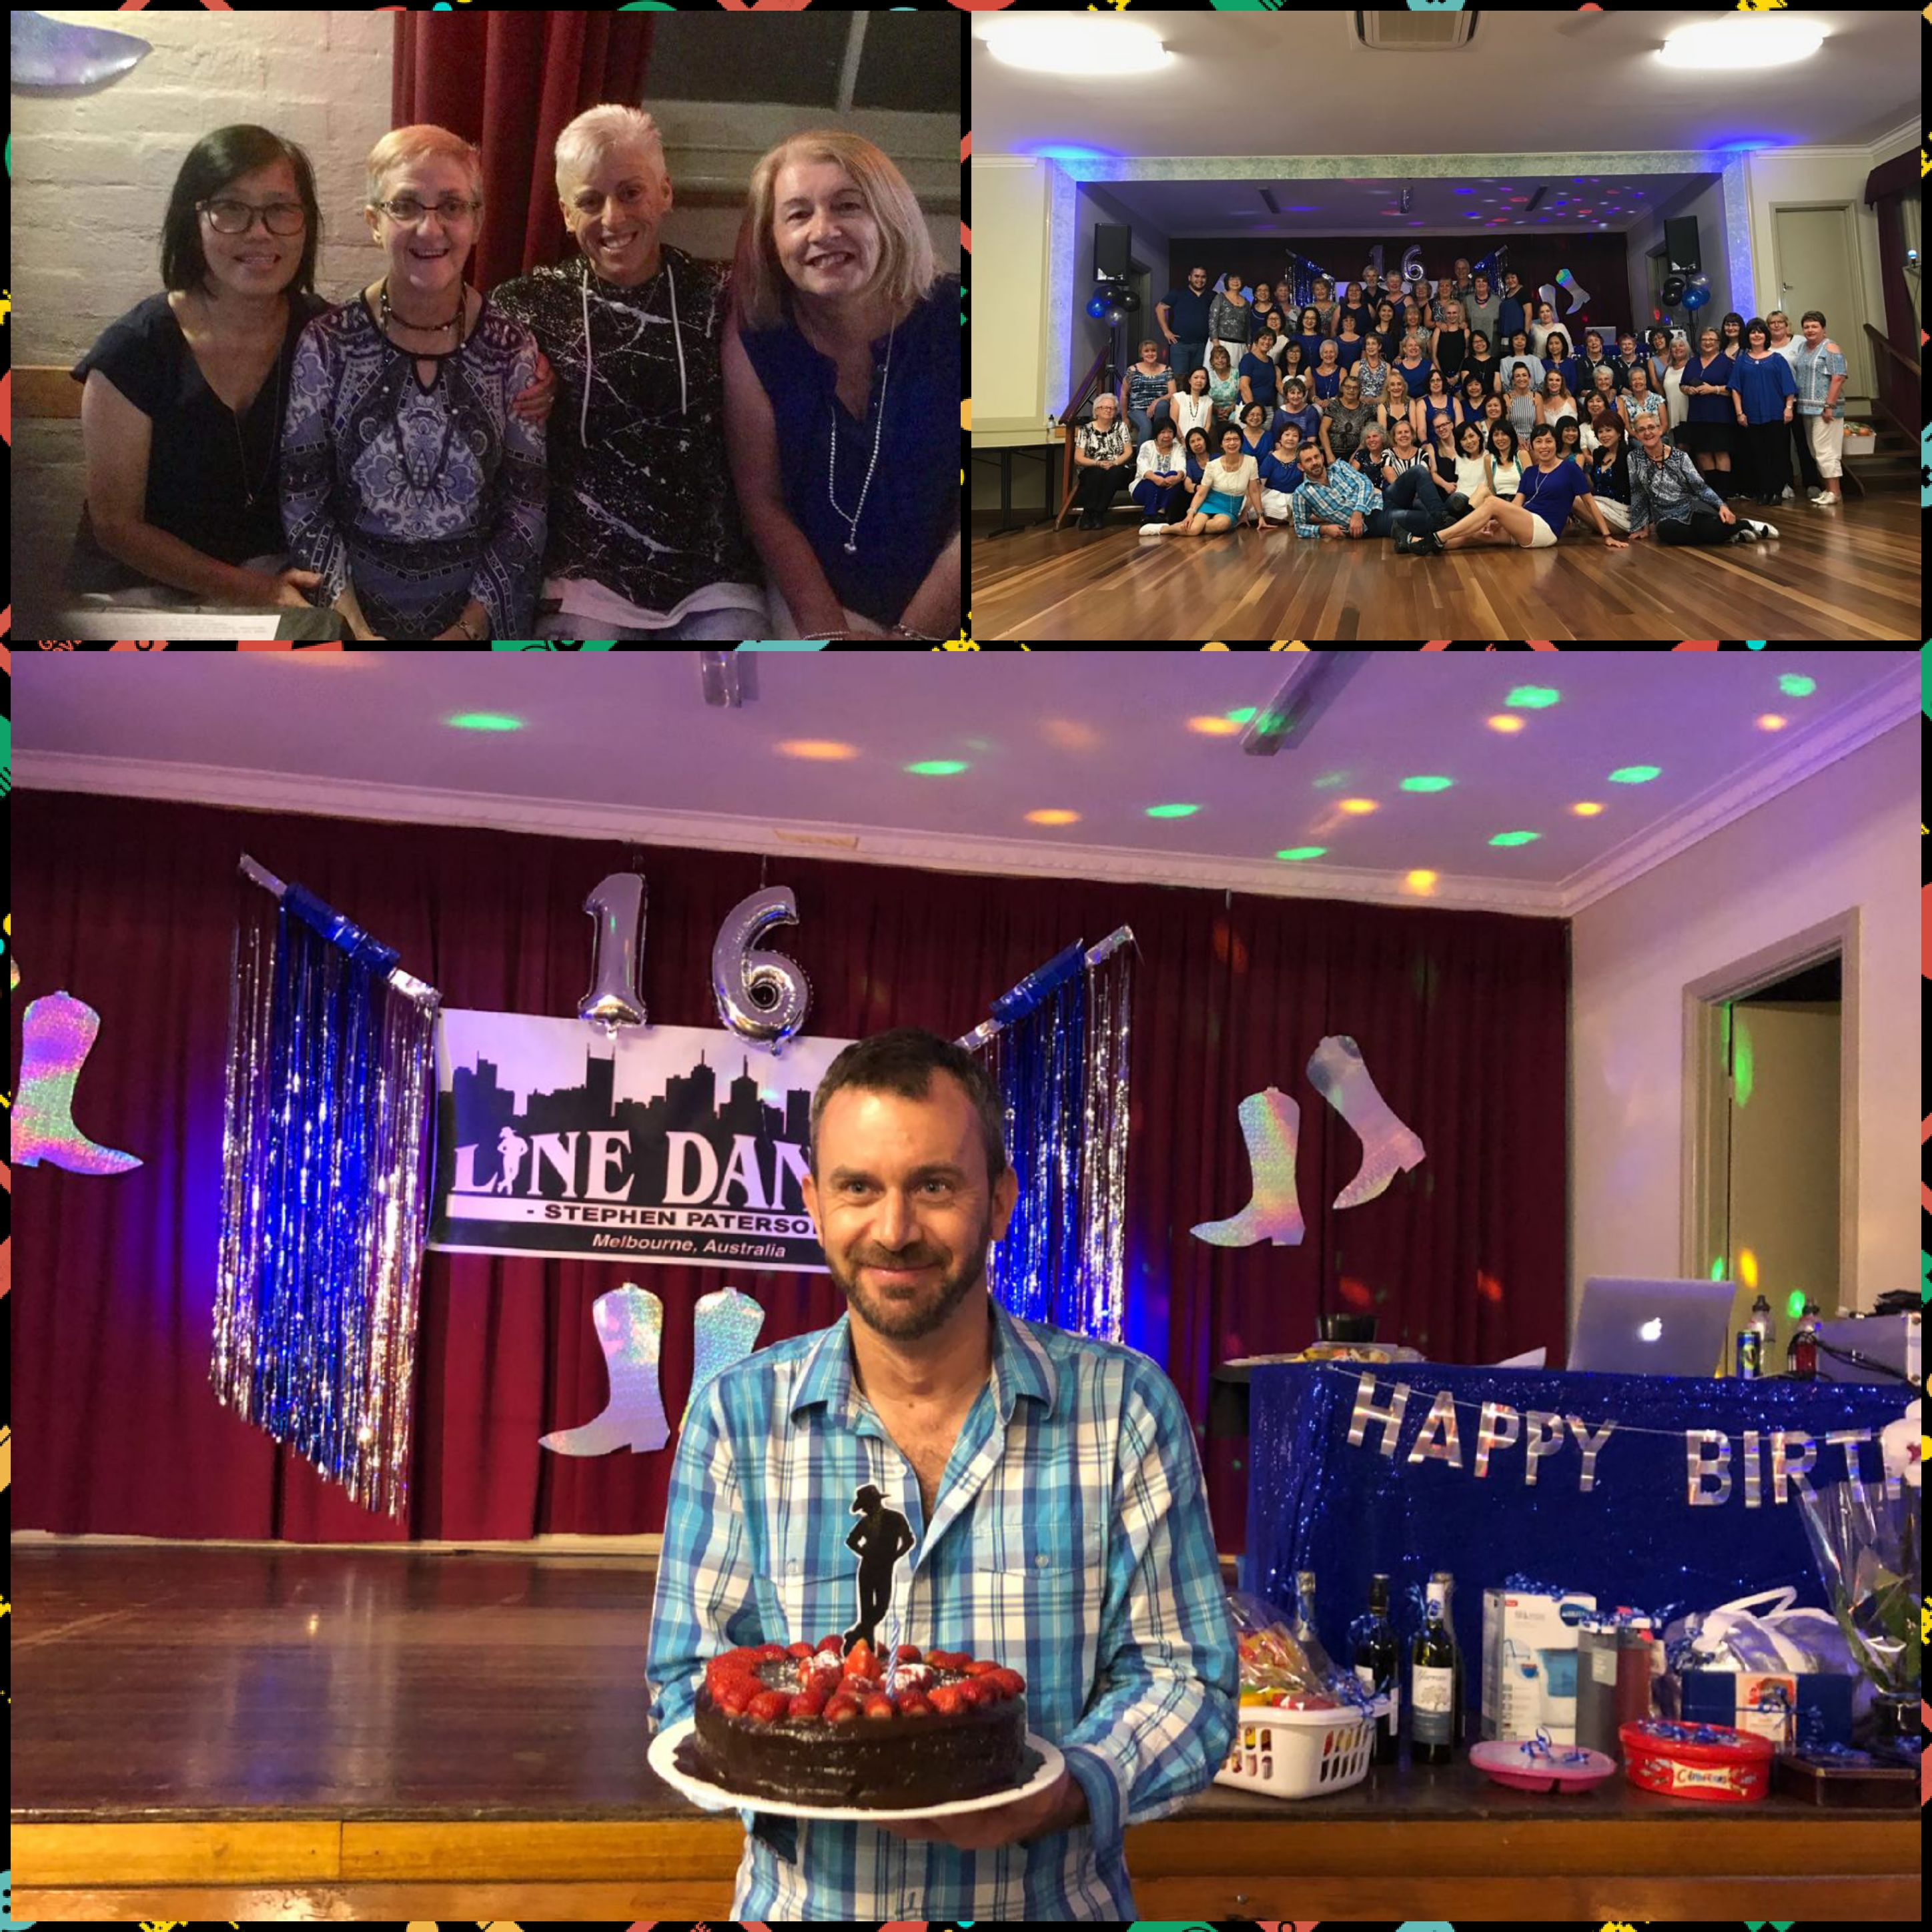 2018 Stephen Paterson 16th birthday social